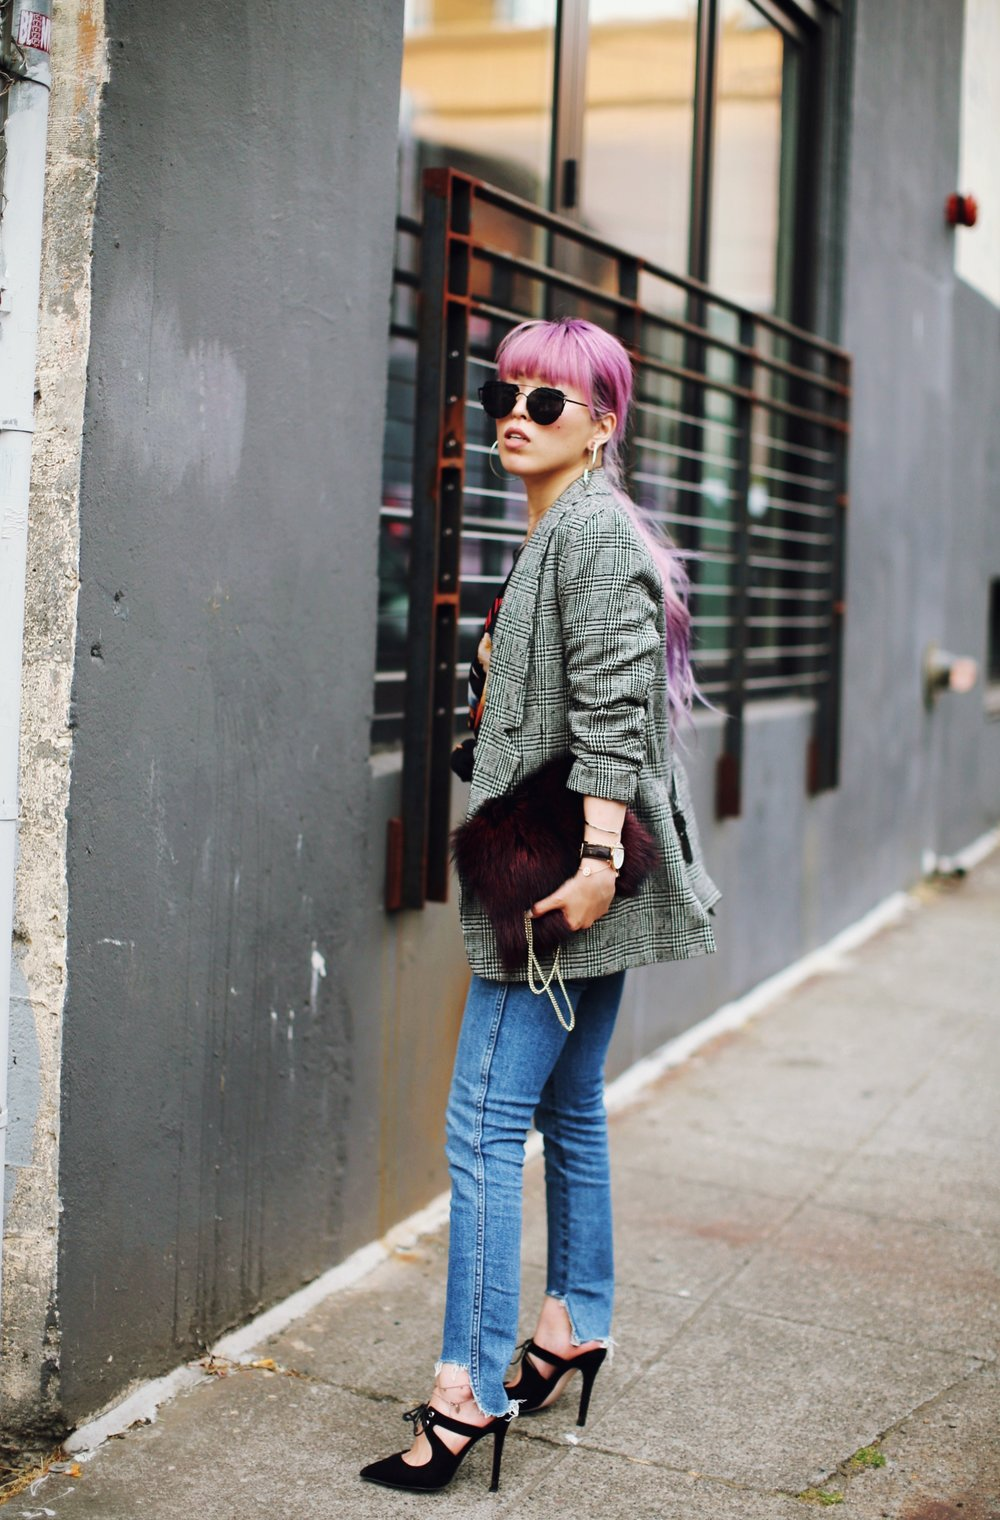 Nordstrom Plaid Blazer_Vintage Rockband Tee_Free People High Waisted Jeans_Daniel Wellington Watch_ASOS Black Mules_DVF Fur Bag_Pink Hair_Aika's Love Closet_Seattle Fashion Style Blogger_Japanese 3